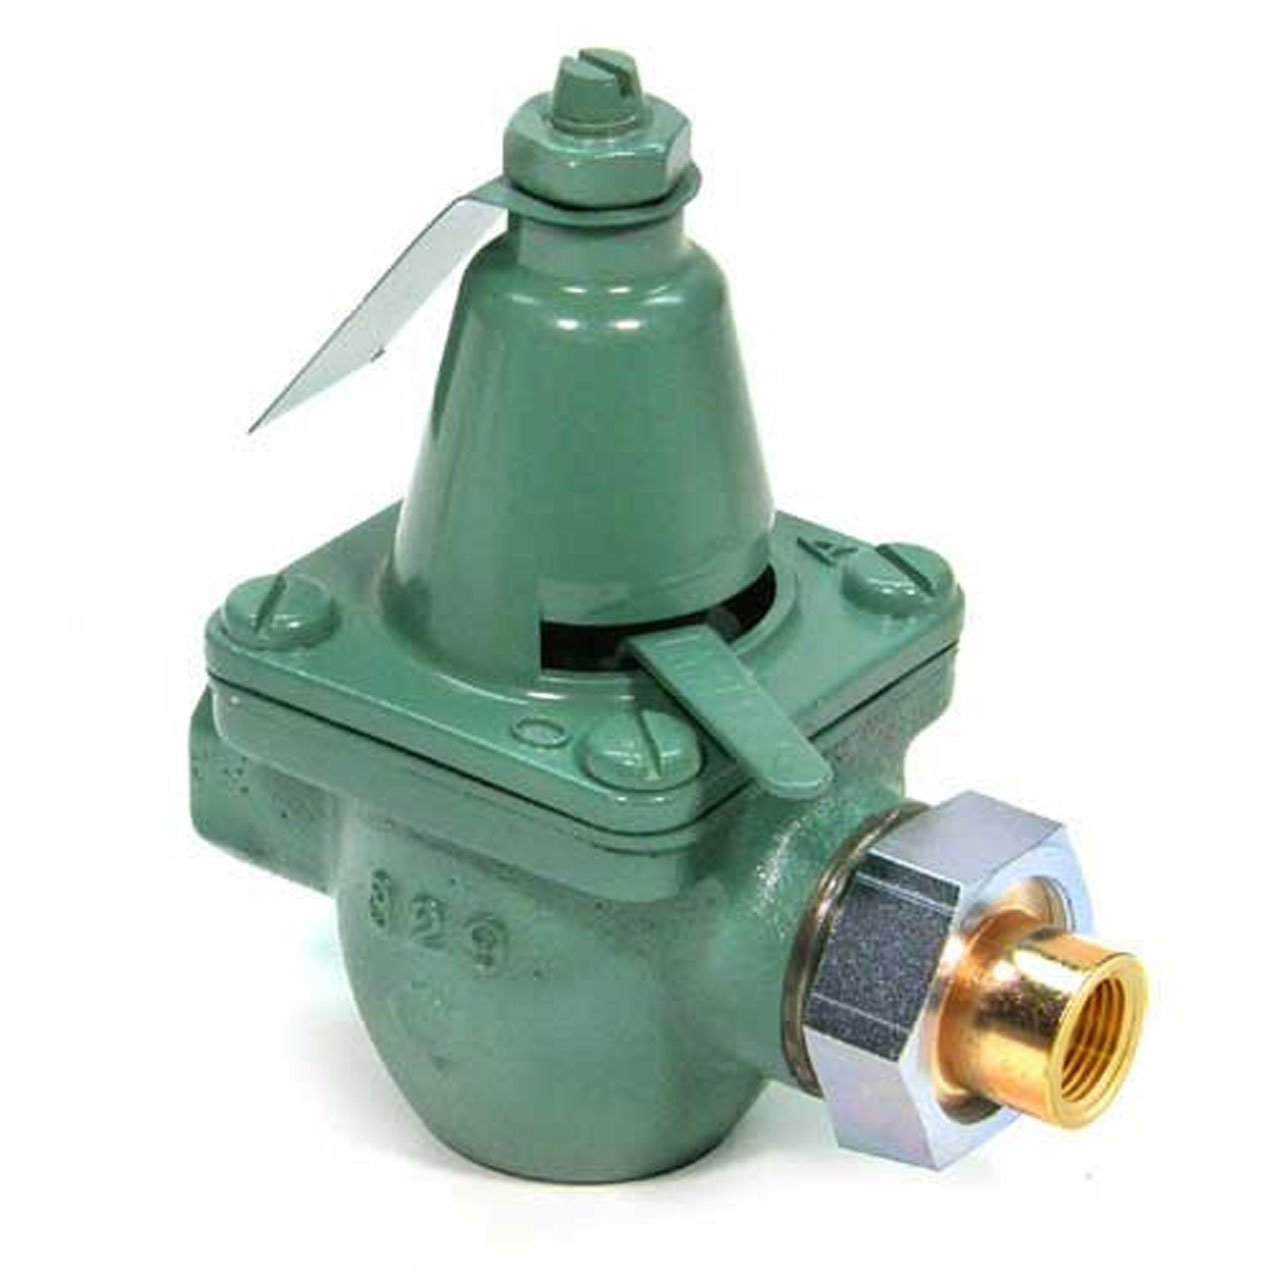 Taco 329-T3 Cast Iron 1/2-Inch FPT x 1/2-Inch FPT Pressure Reducing Valve